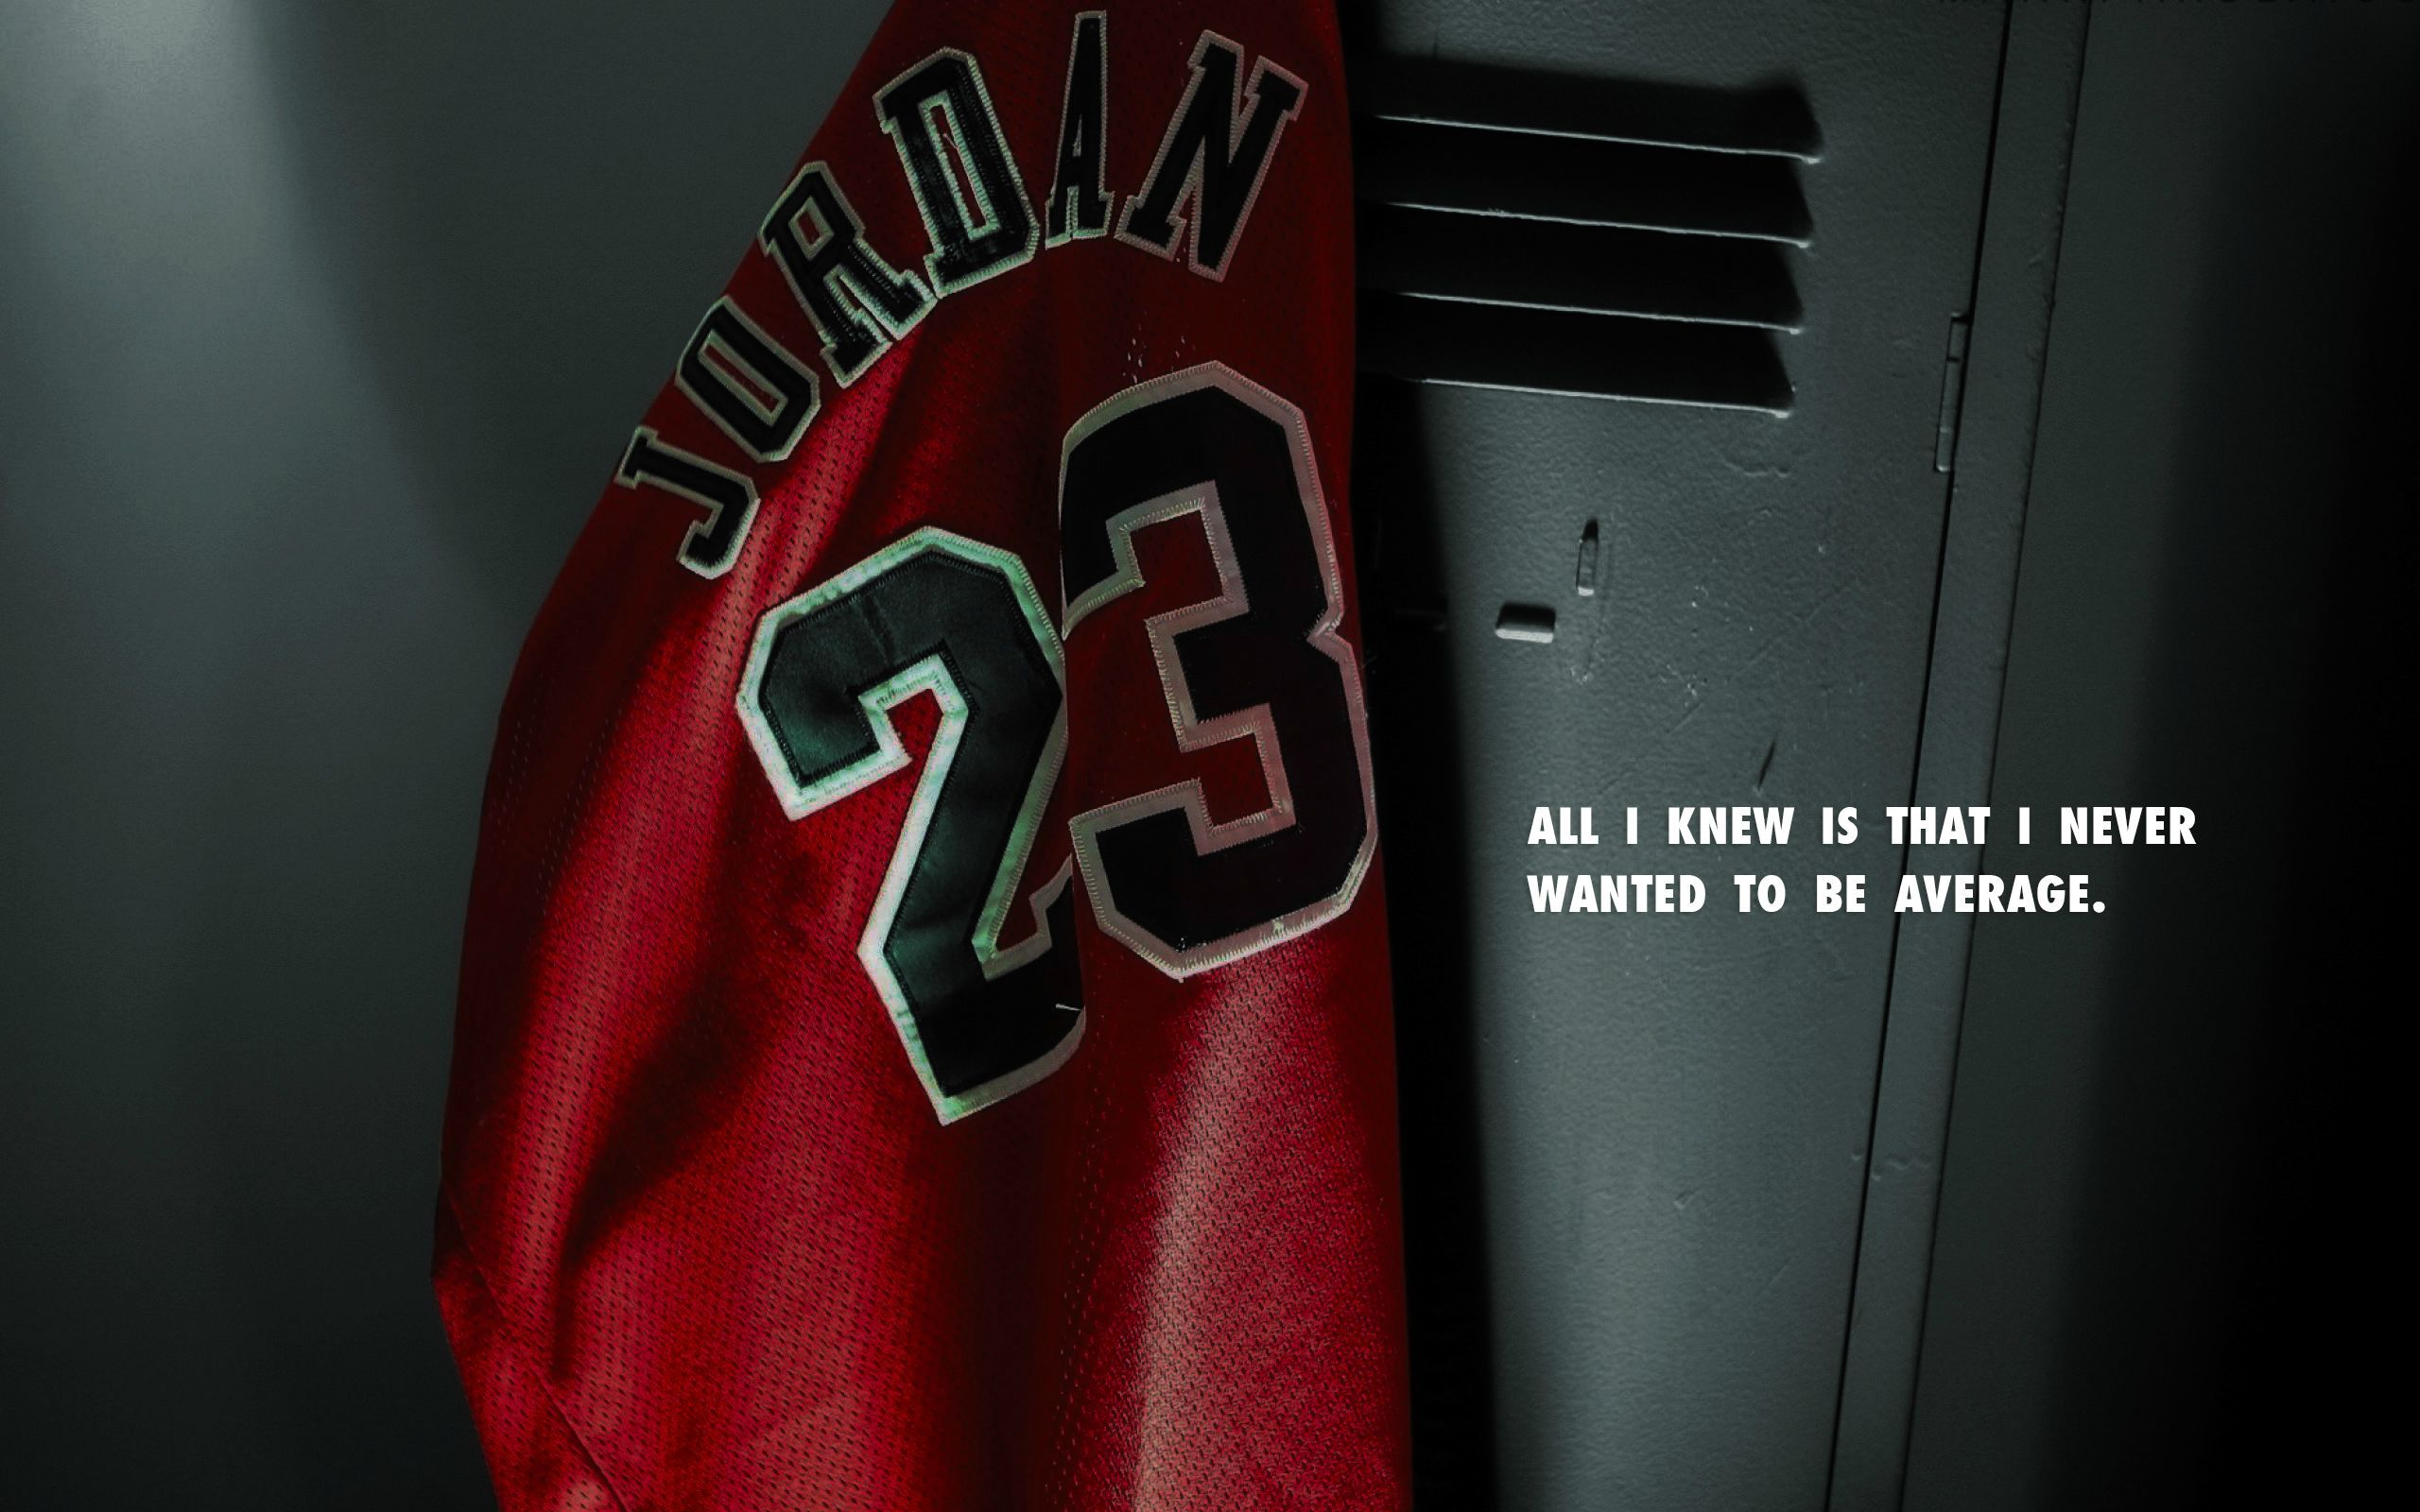 2560x1600 Made some desktop backgrounds for r/NBA with player quotes ...